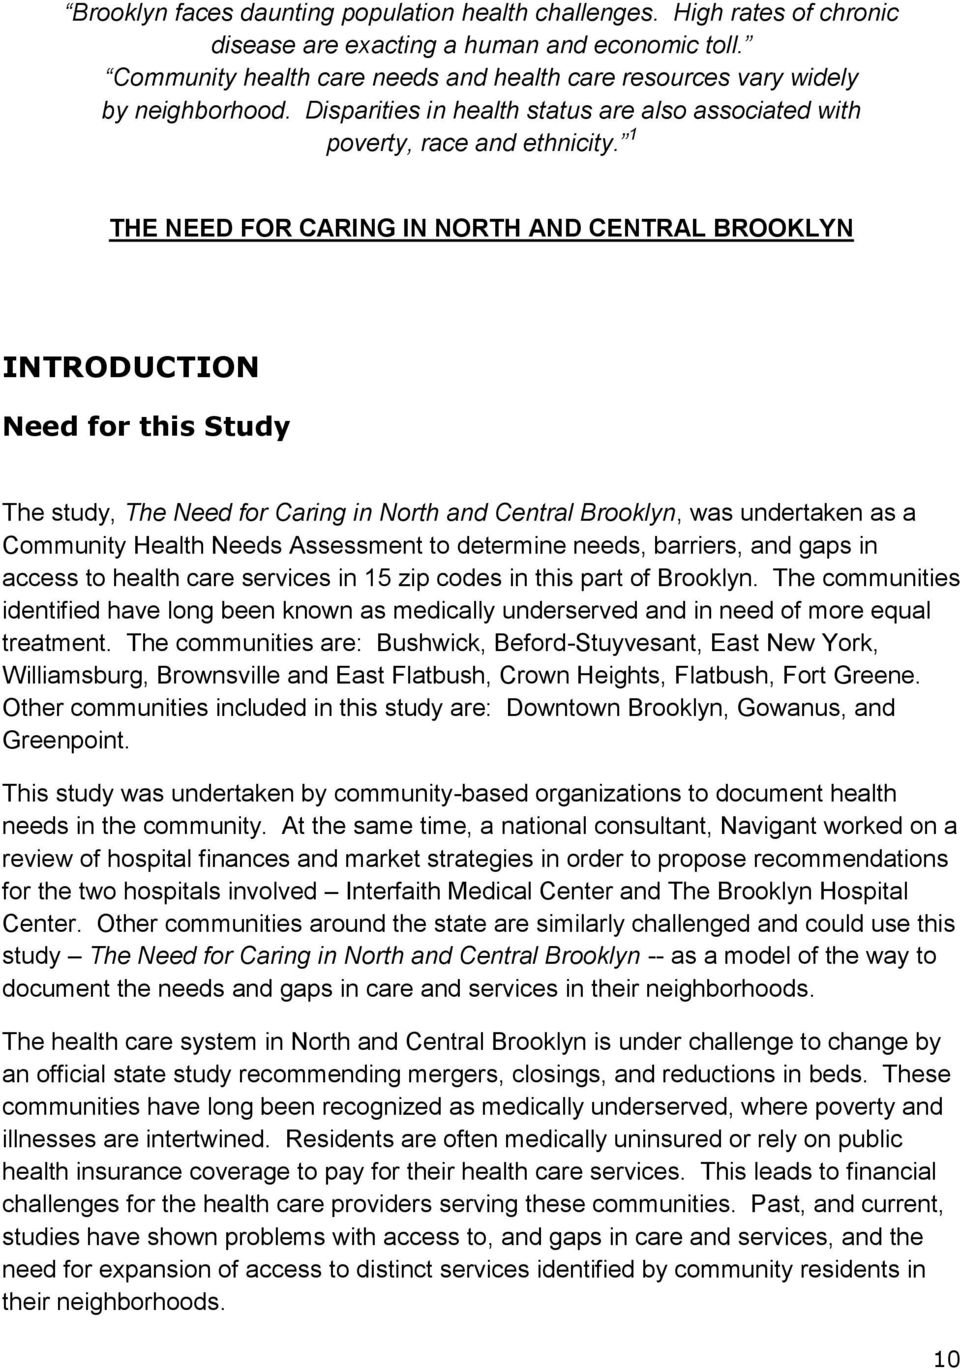 1 THE NEED FOR CARING IN NORTH AND CENTRAL BROOKLYN INTRODUCTION Need for this Study The study, The Need for Caring in North and Central Brooklyn, was undertaken as a Community Health Needs